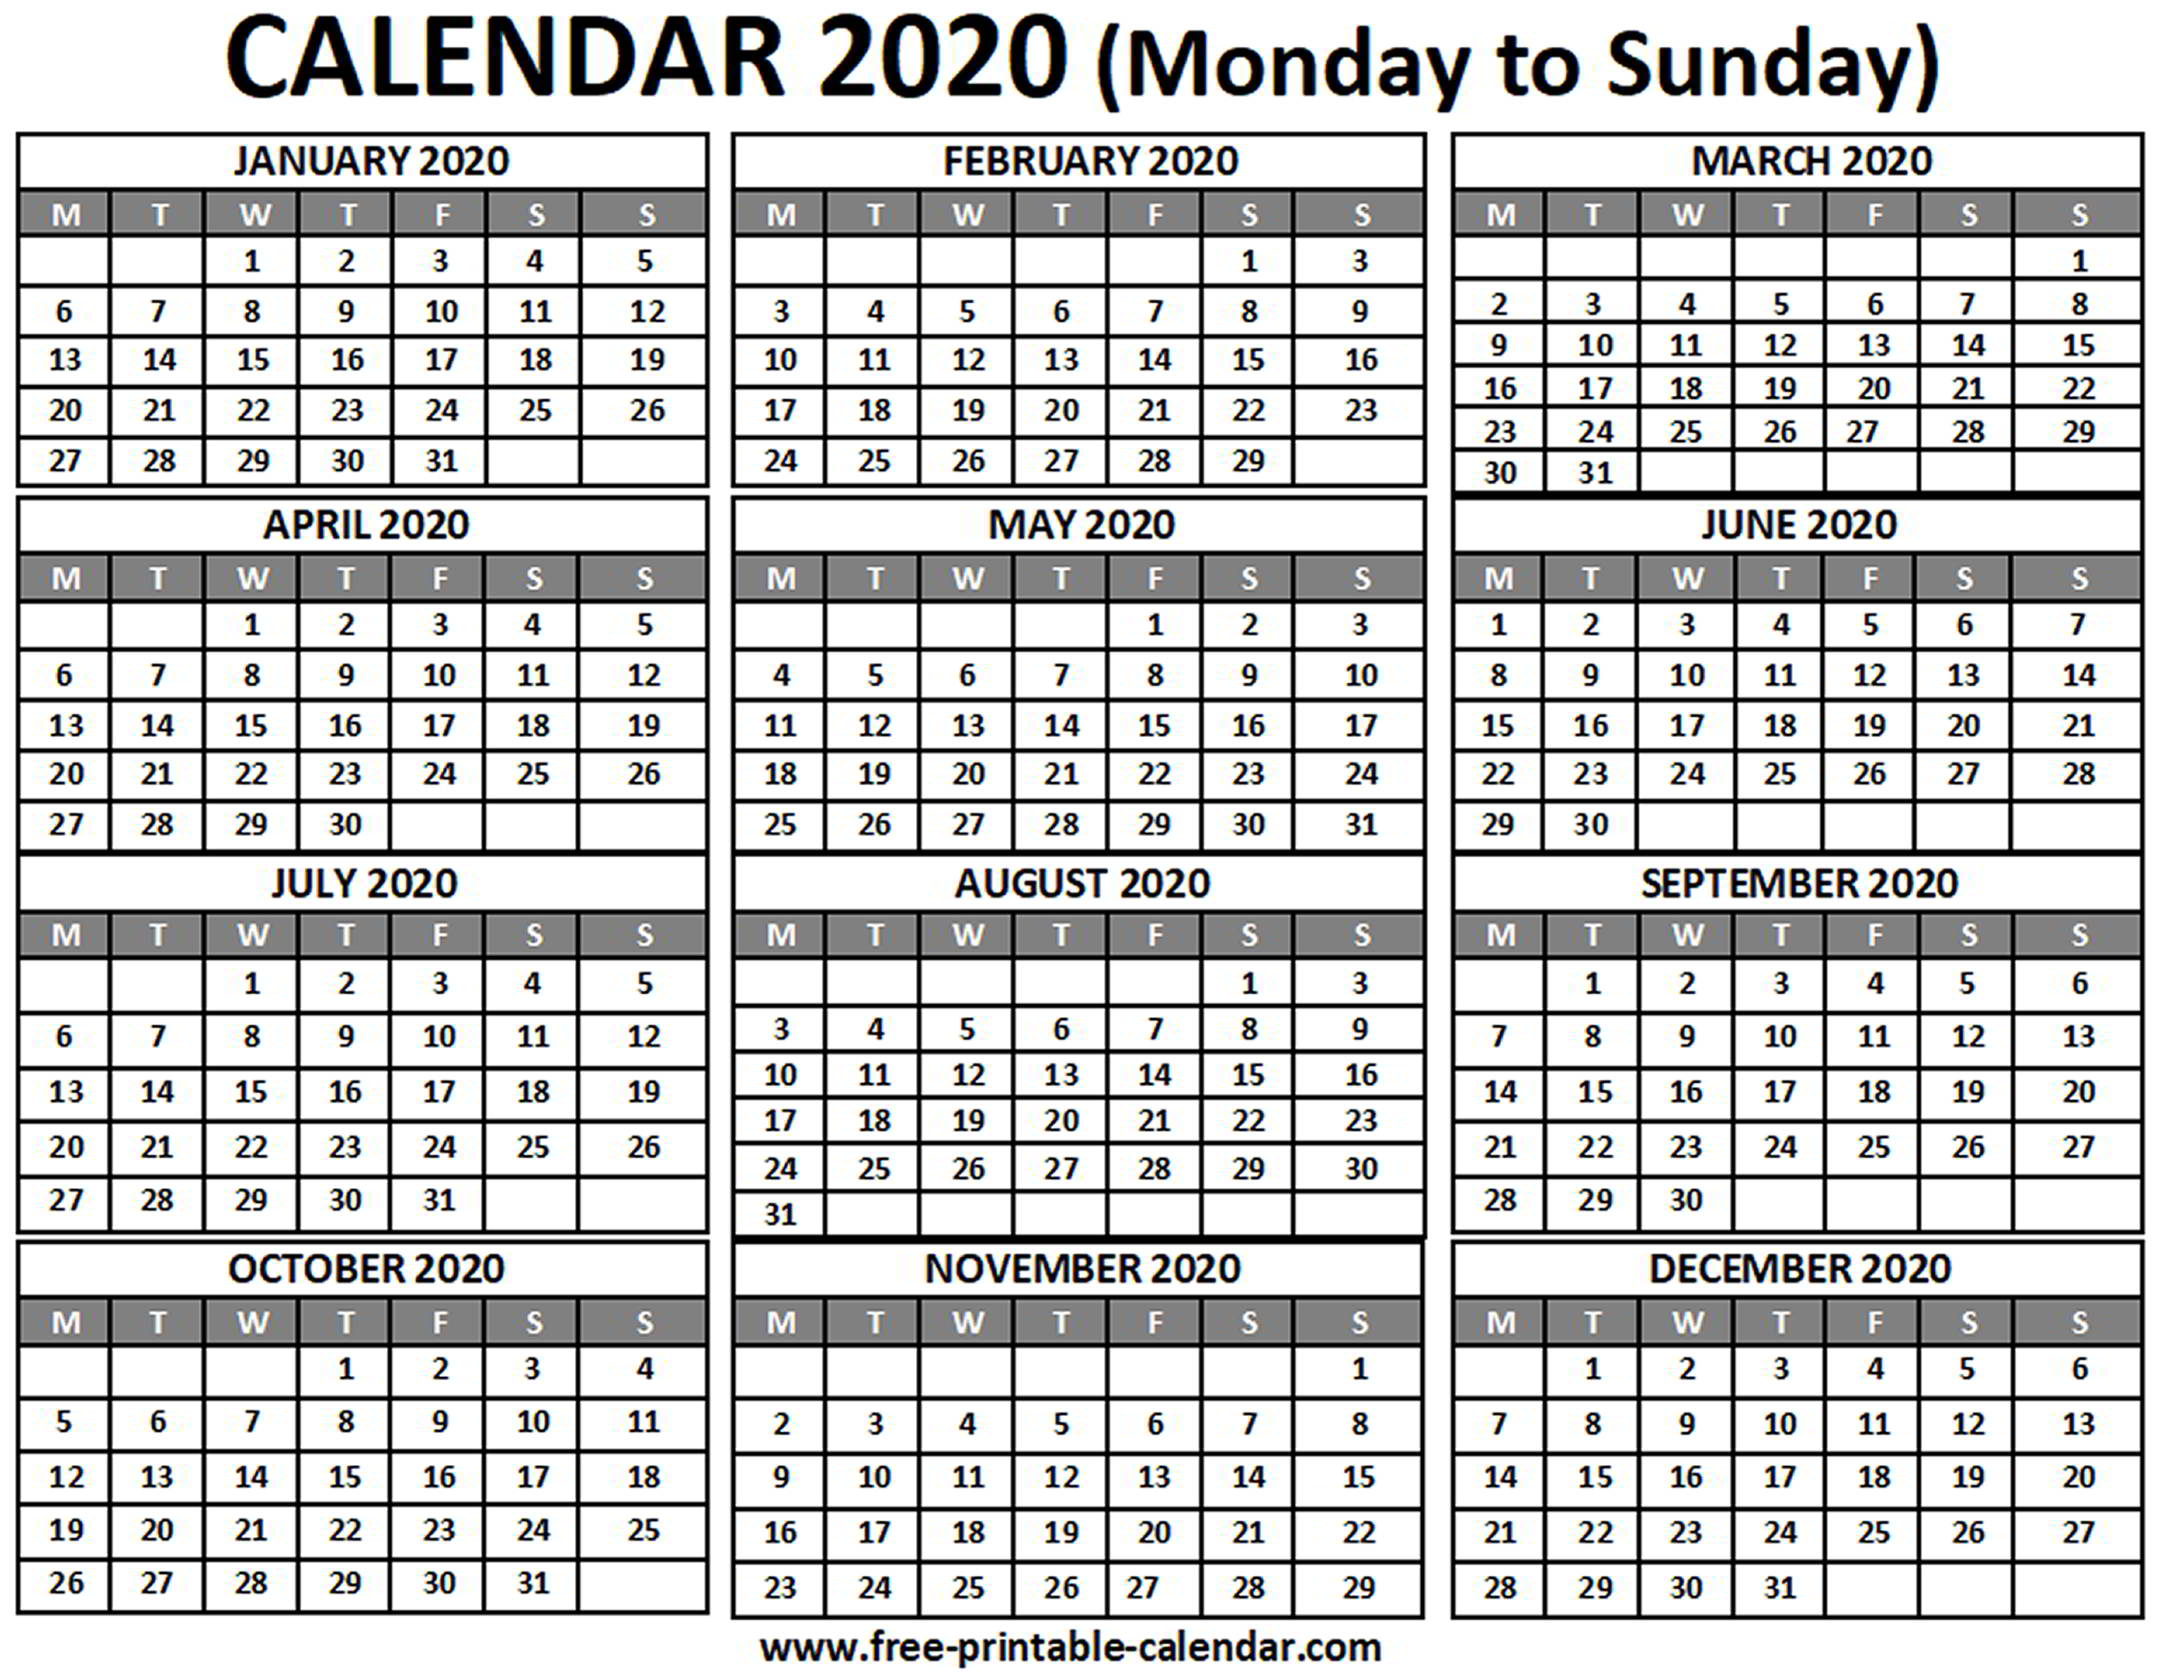 2020 Calendar - Free-Printable-Calendar inside Sunday To Saturday Calendar 2020 Printable